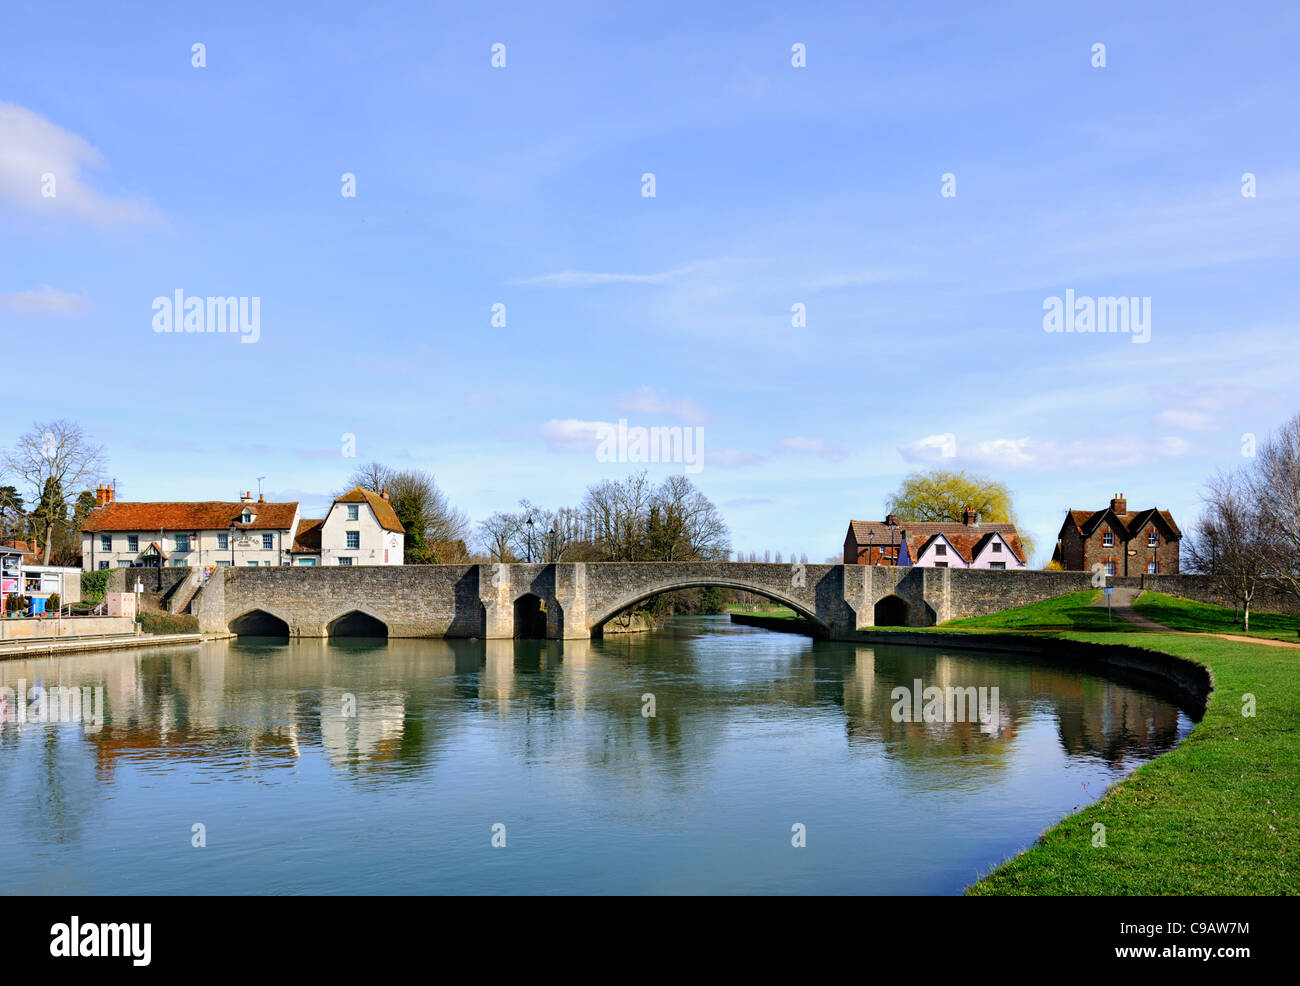 1416 Abingdon Bridge on River Thames, Oxfordshire - Stock Image